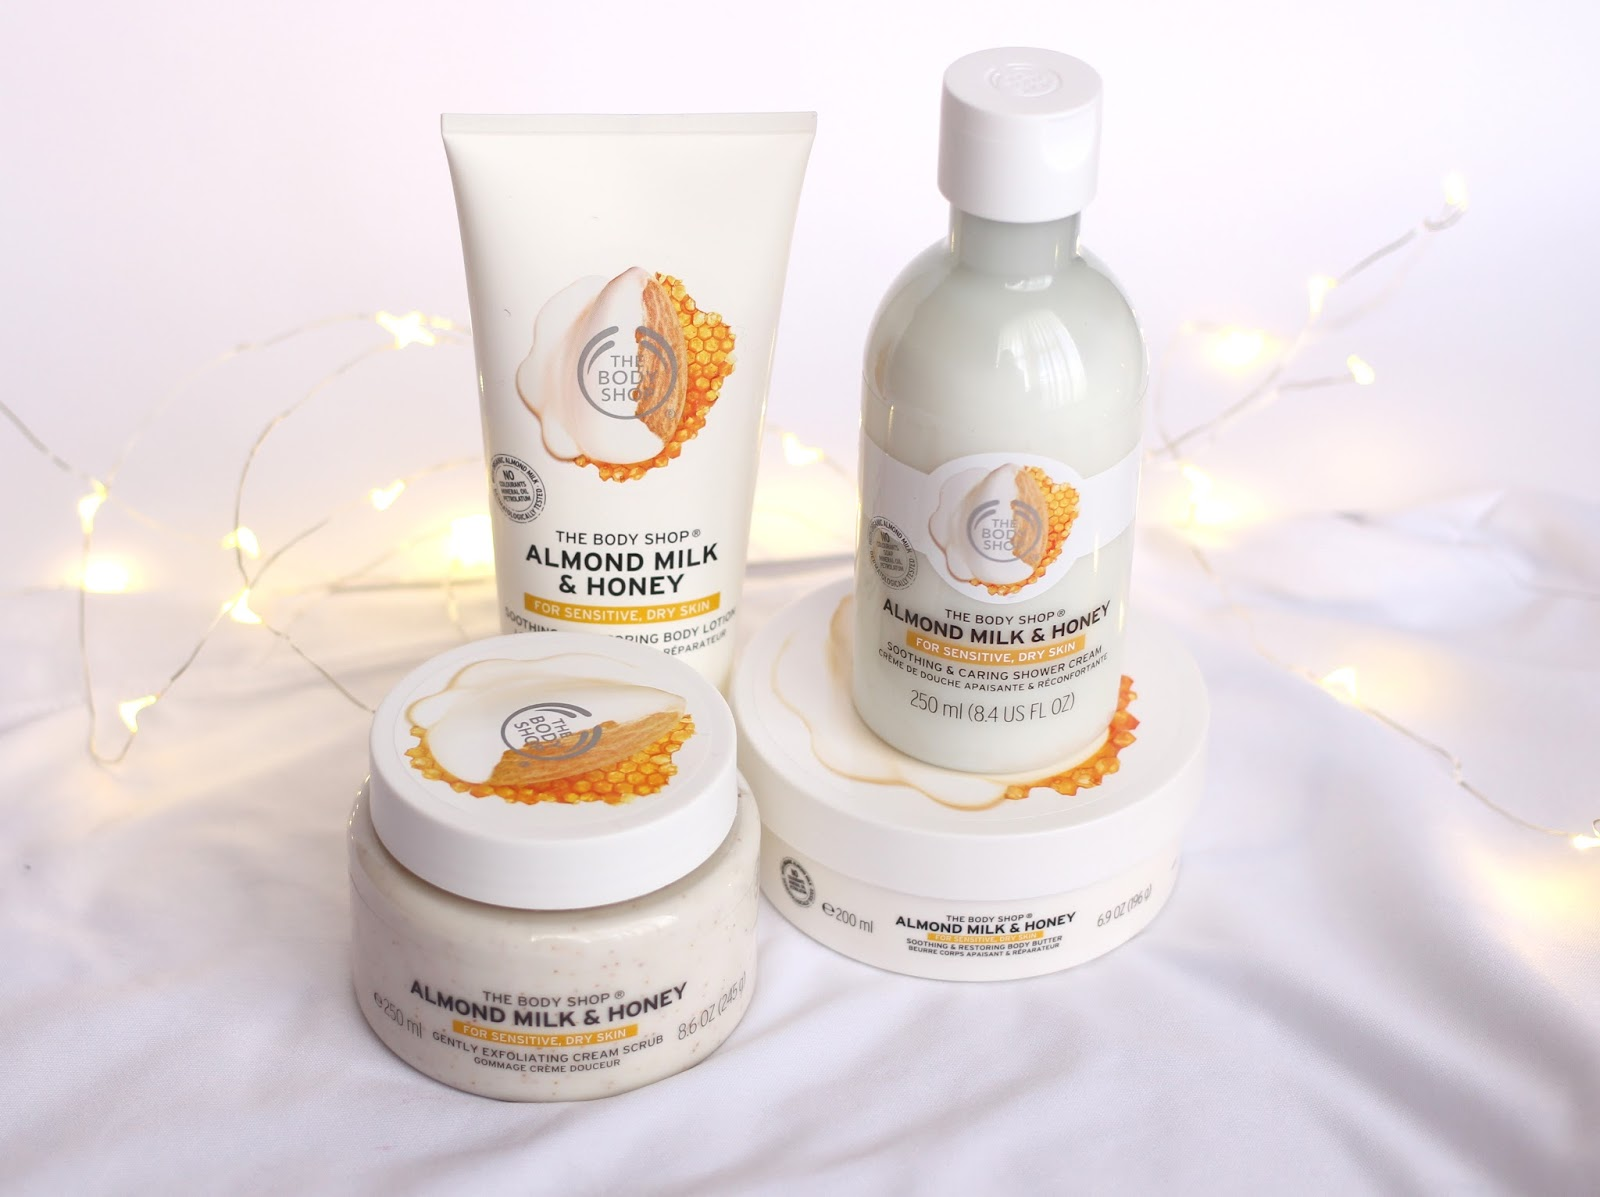 The Body Shop Almond Milk & Honey Range